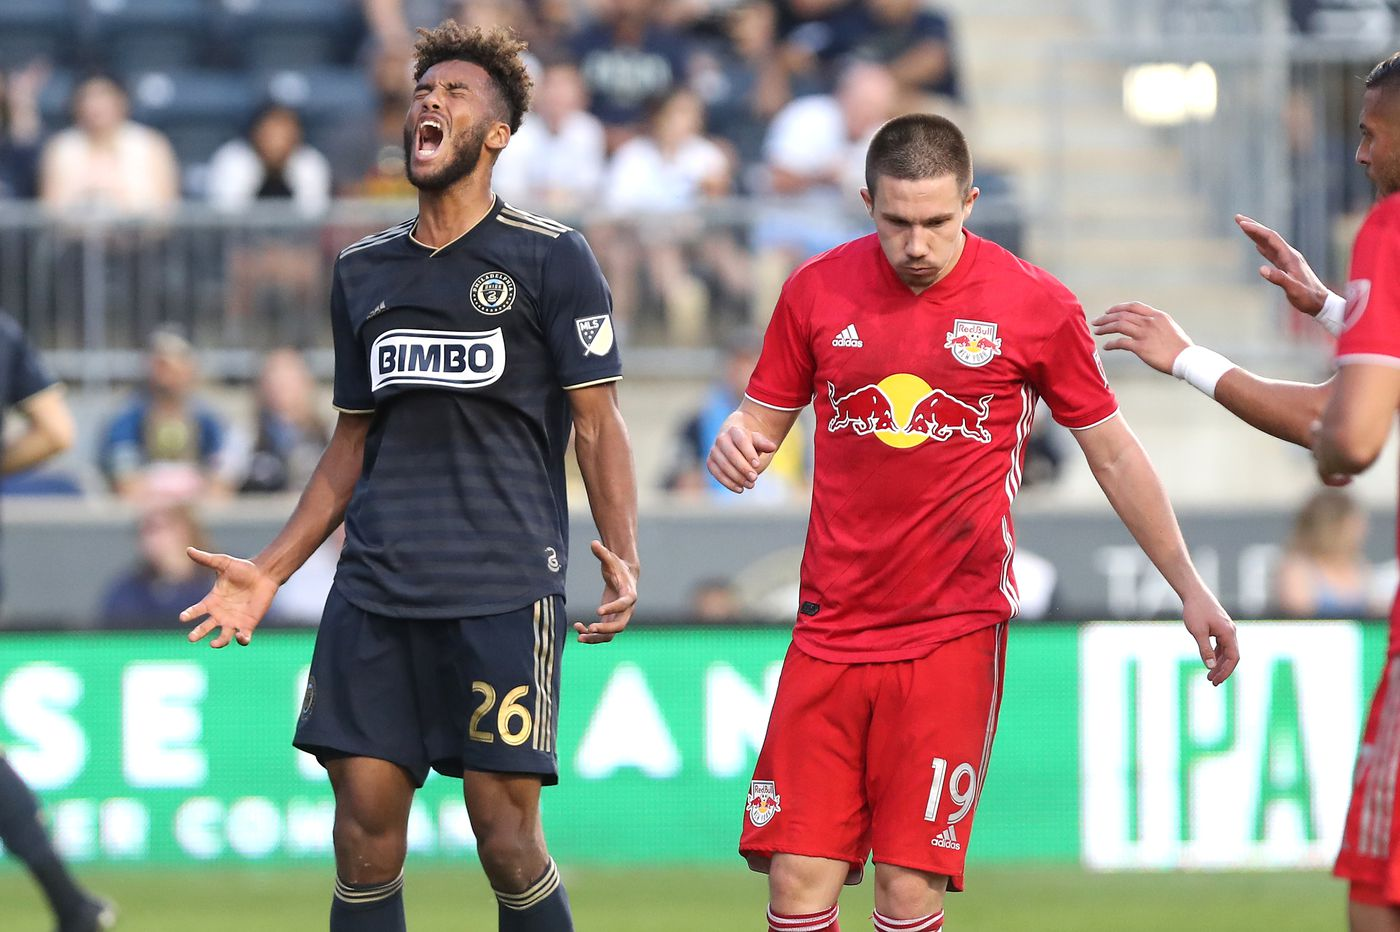 Union's Auston Trusty, Brenden Aaronson called up to USMNT Olympic team training camp